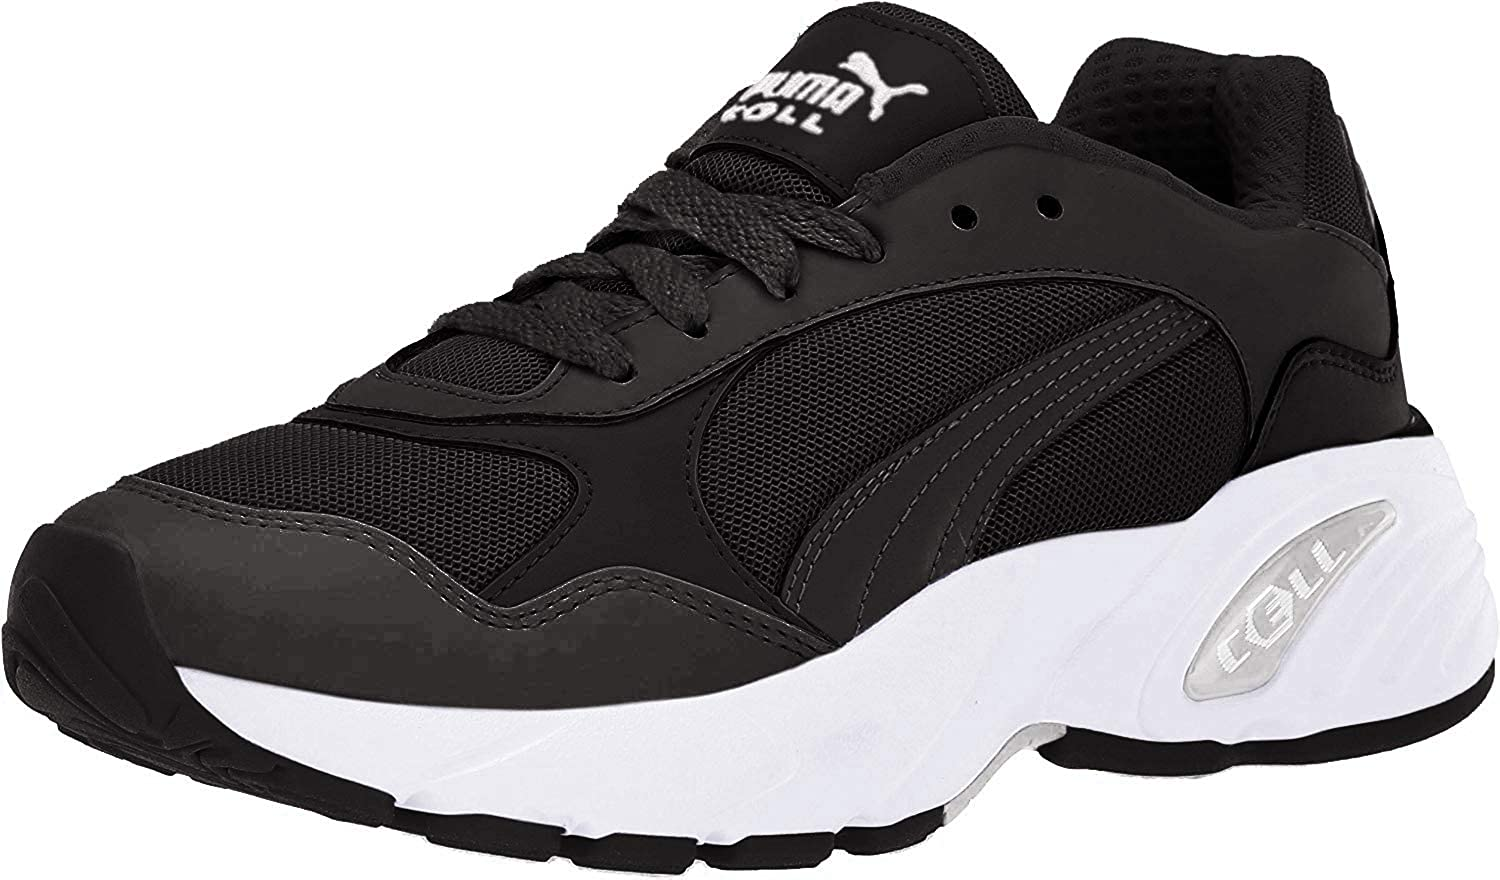 PUMA Some reservation Courier shipping free Unisex-Adult Cell Sneaker Viper